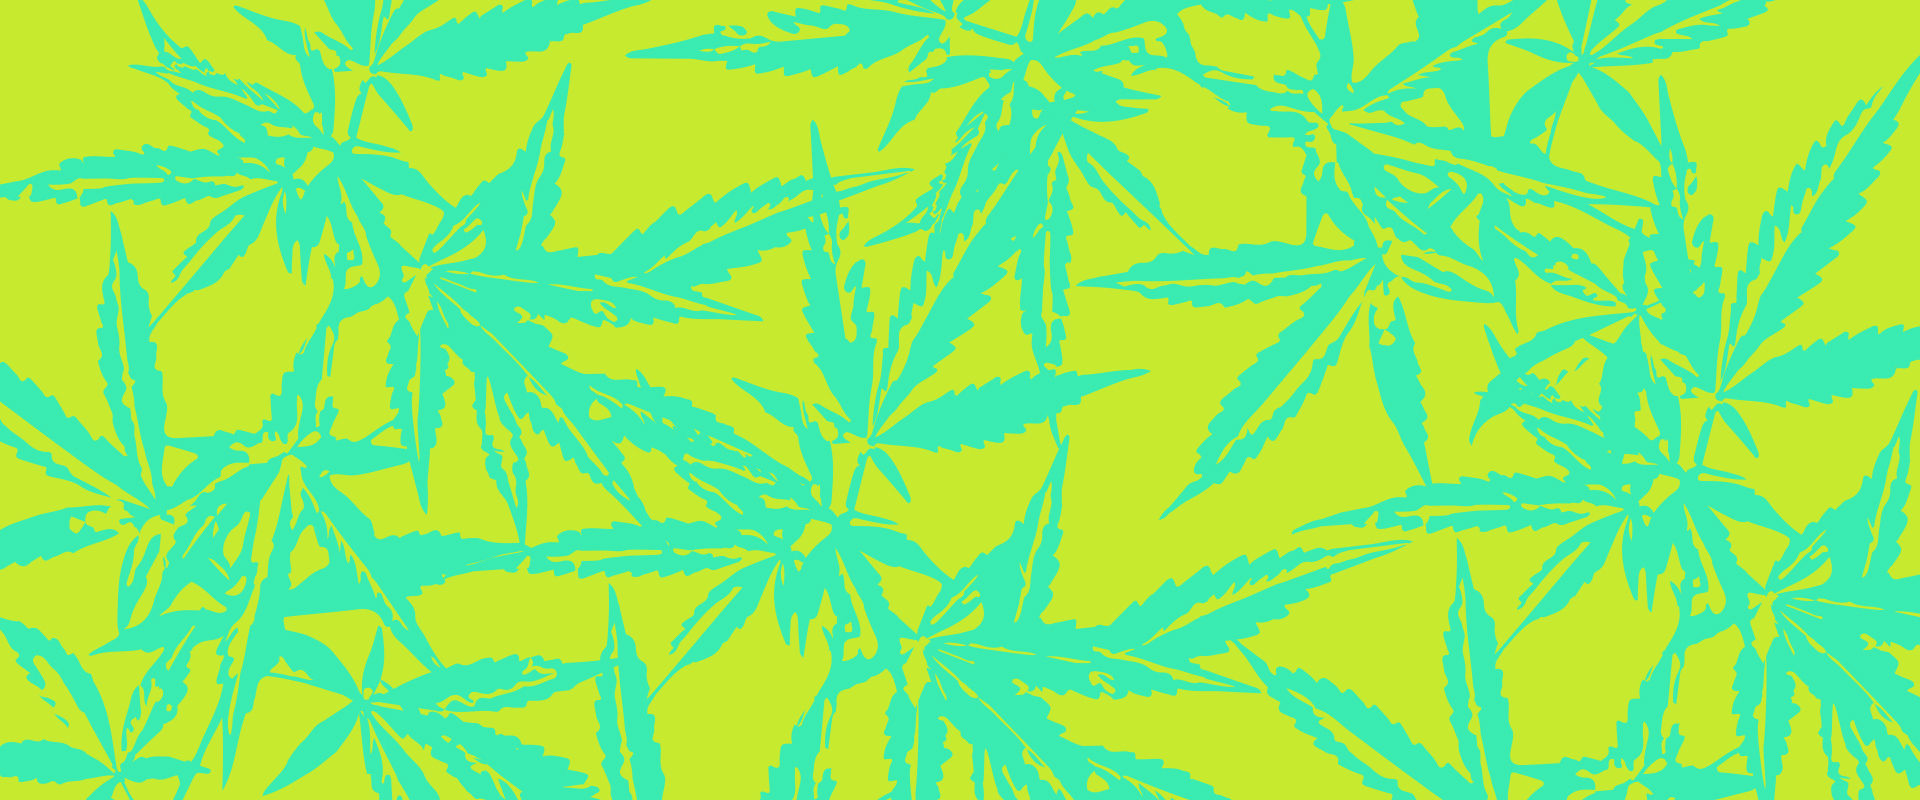 Ten17 Green Cannabis Graphic Banner